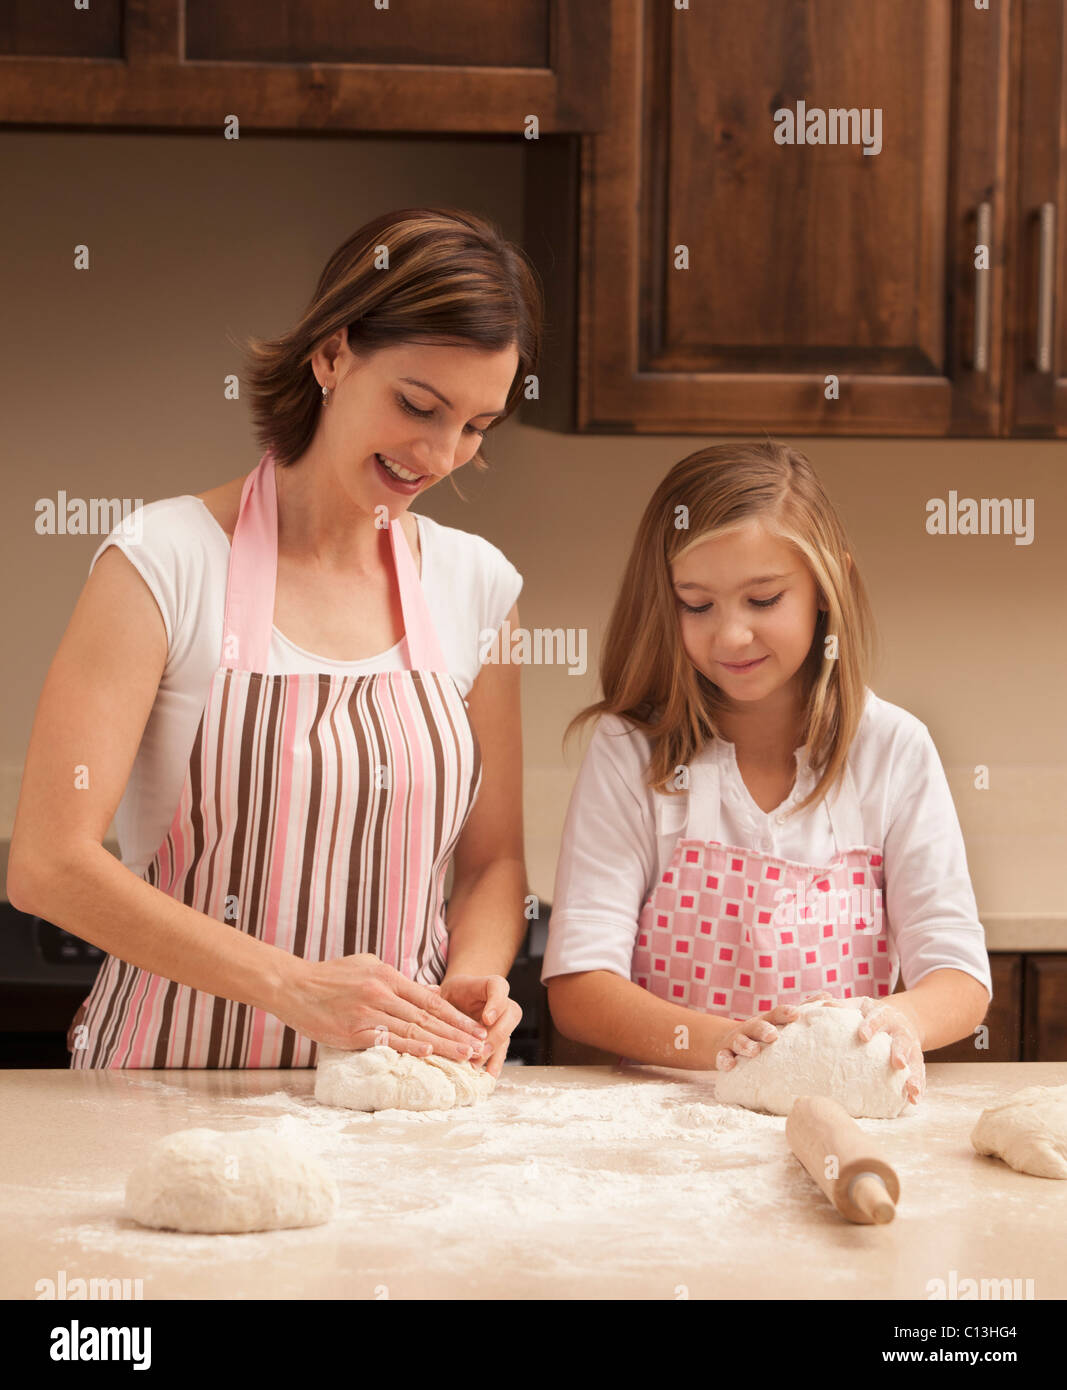 USA, Utah, Lehi, Mother and daughter (10-11) kneading dough in kitchen - Stock Image